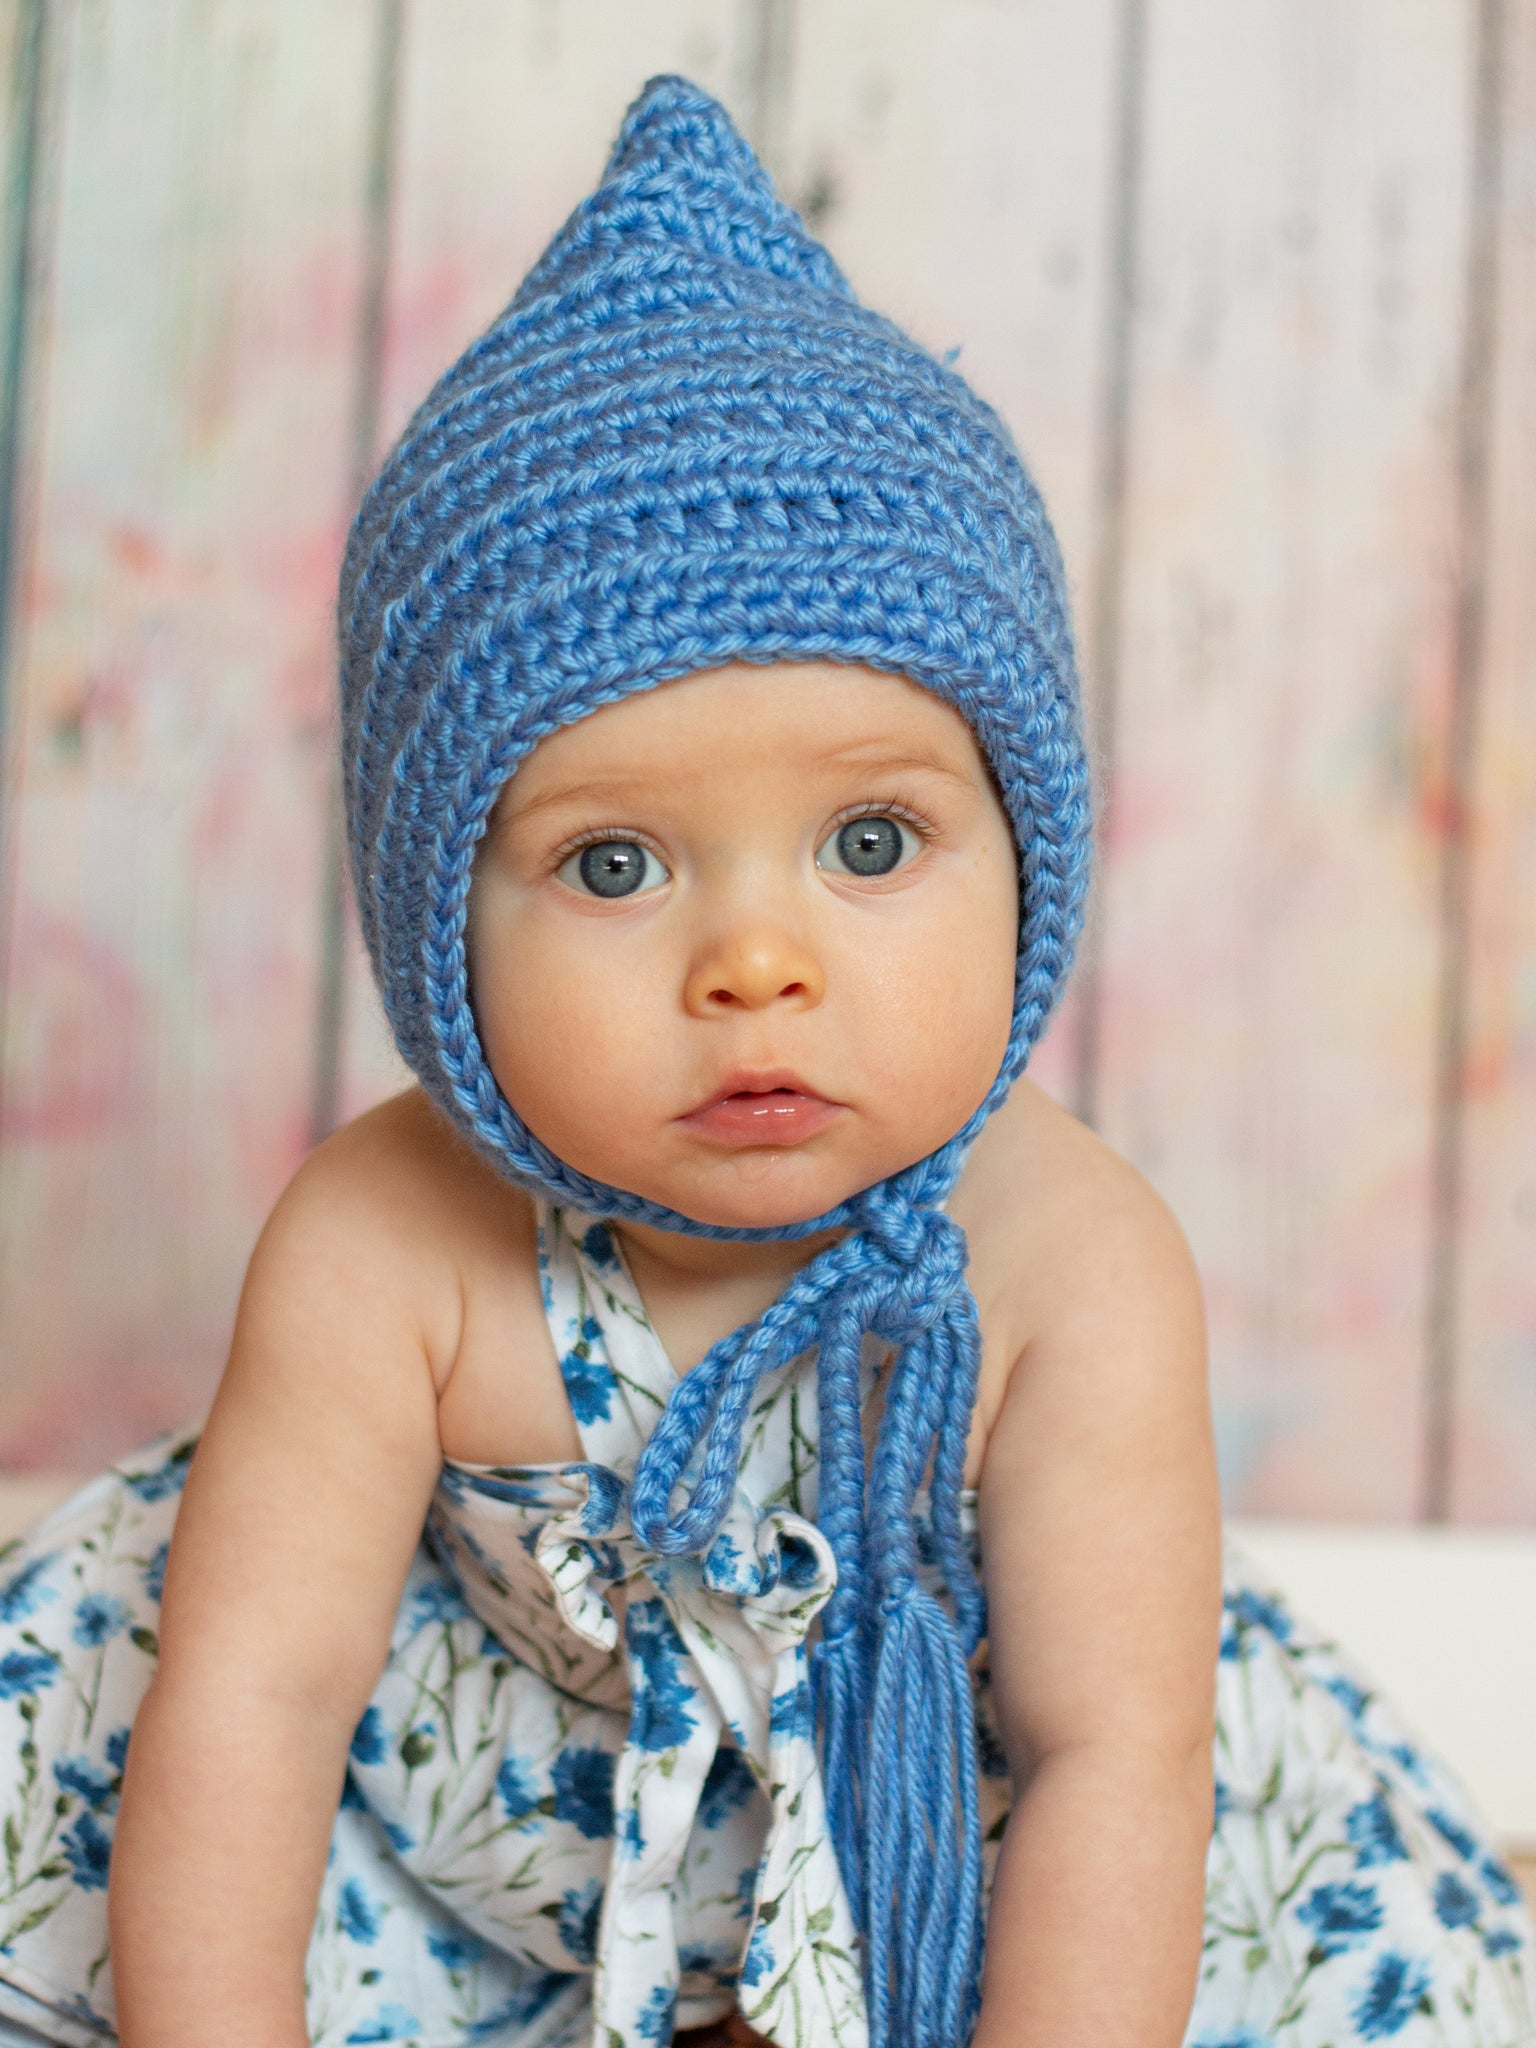 Blue pixie elf hat by Two Seaside Babes